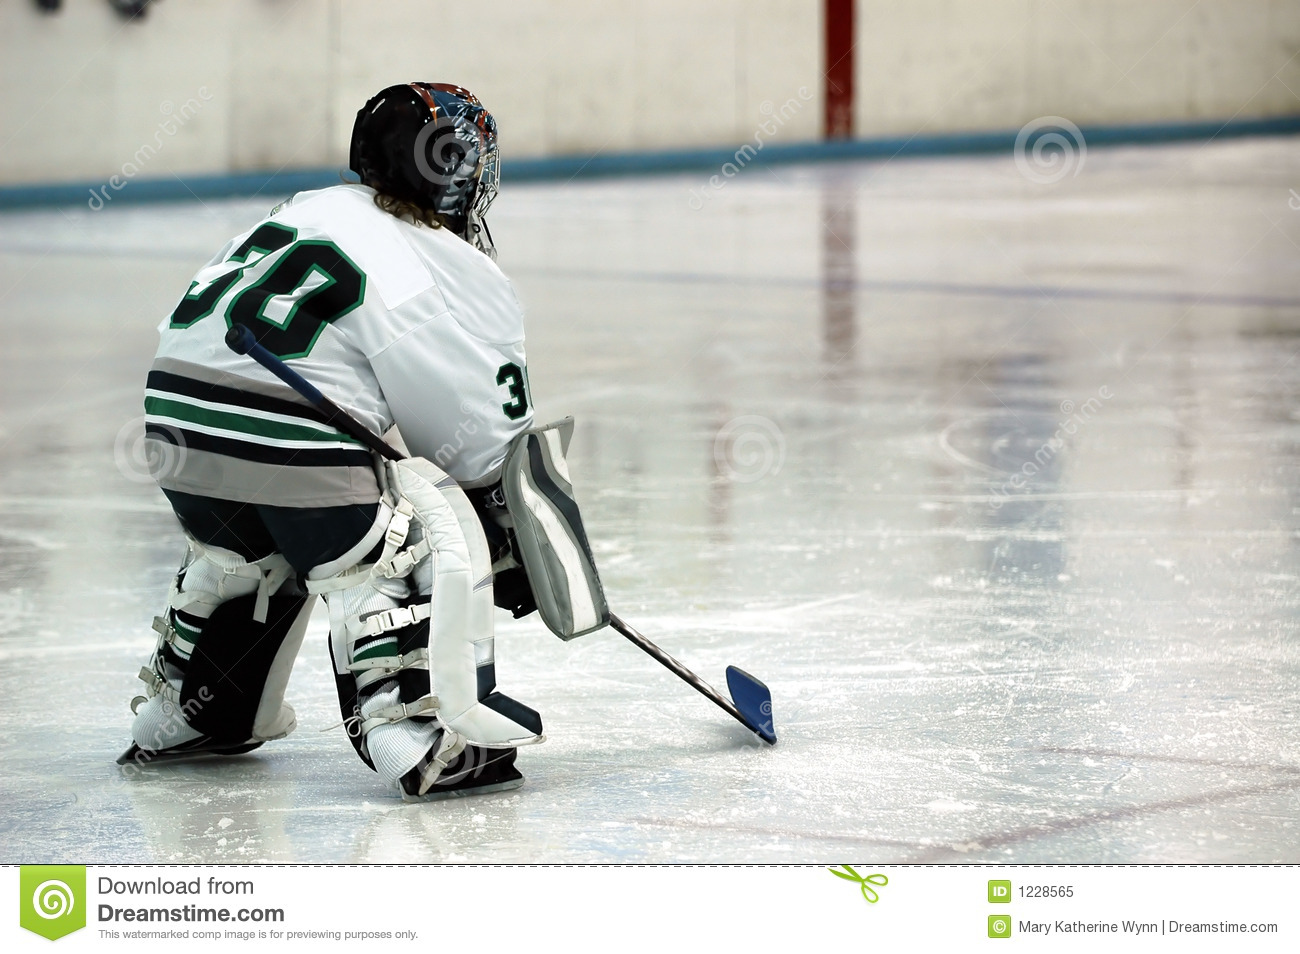 an analysis of a goaltender in ice hockey Developed by tactical goalie, creasecam™ is a unique coaching tool specifically designed for ice hockey goaltenders, their teams and coaches.